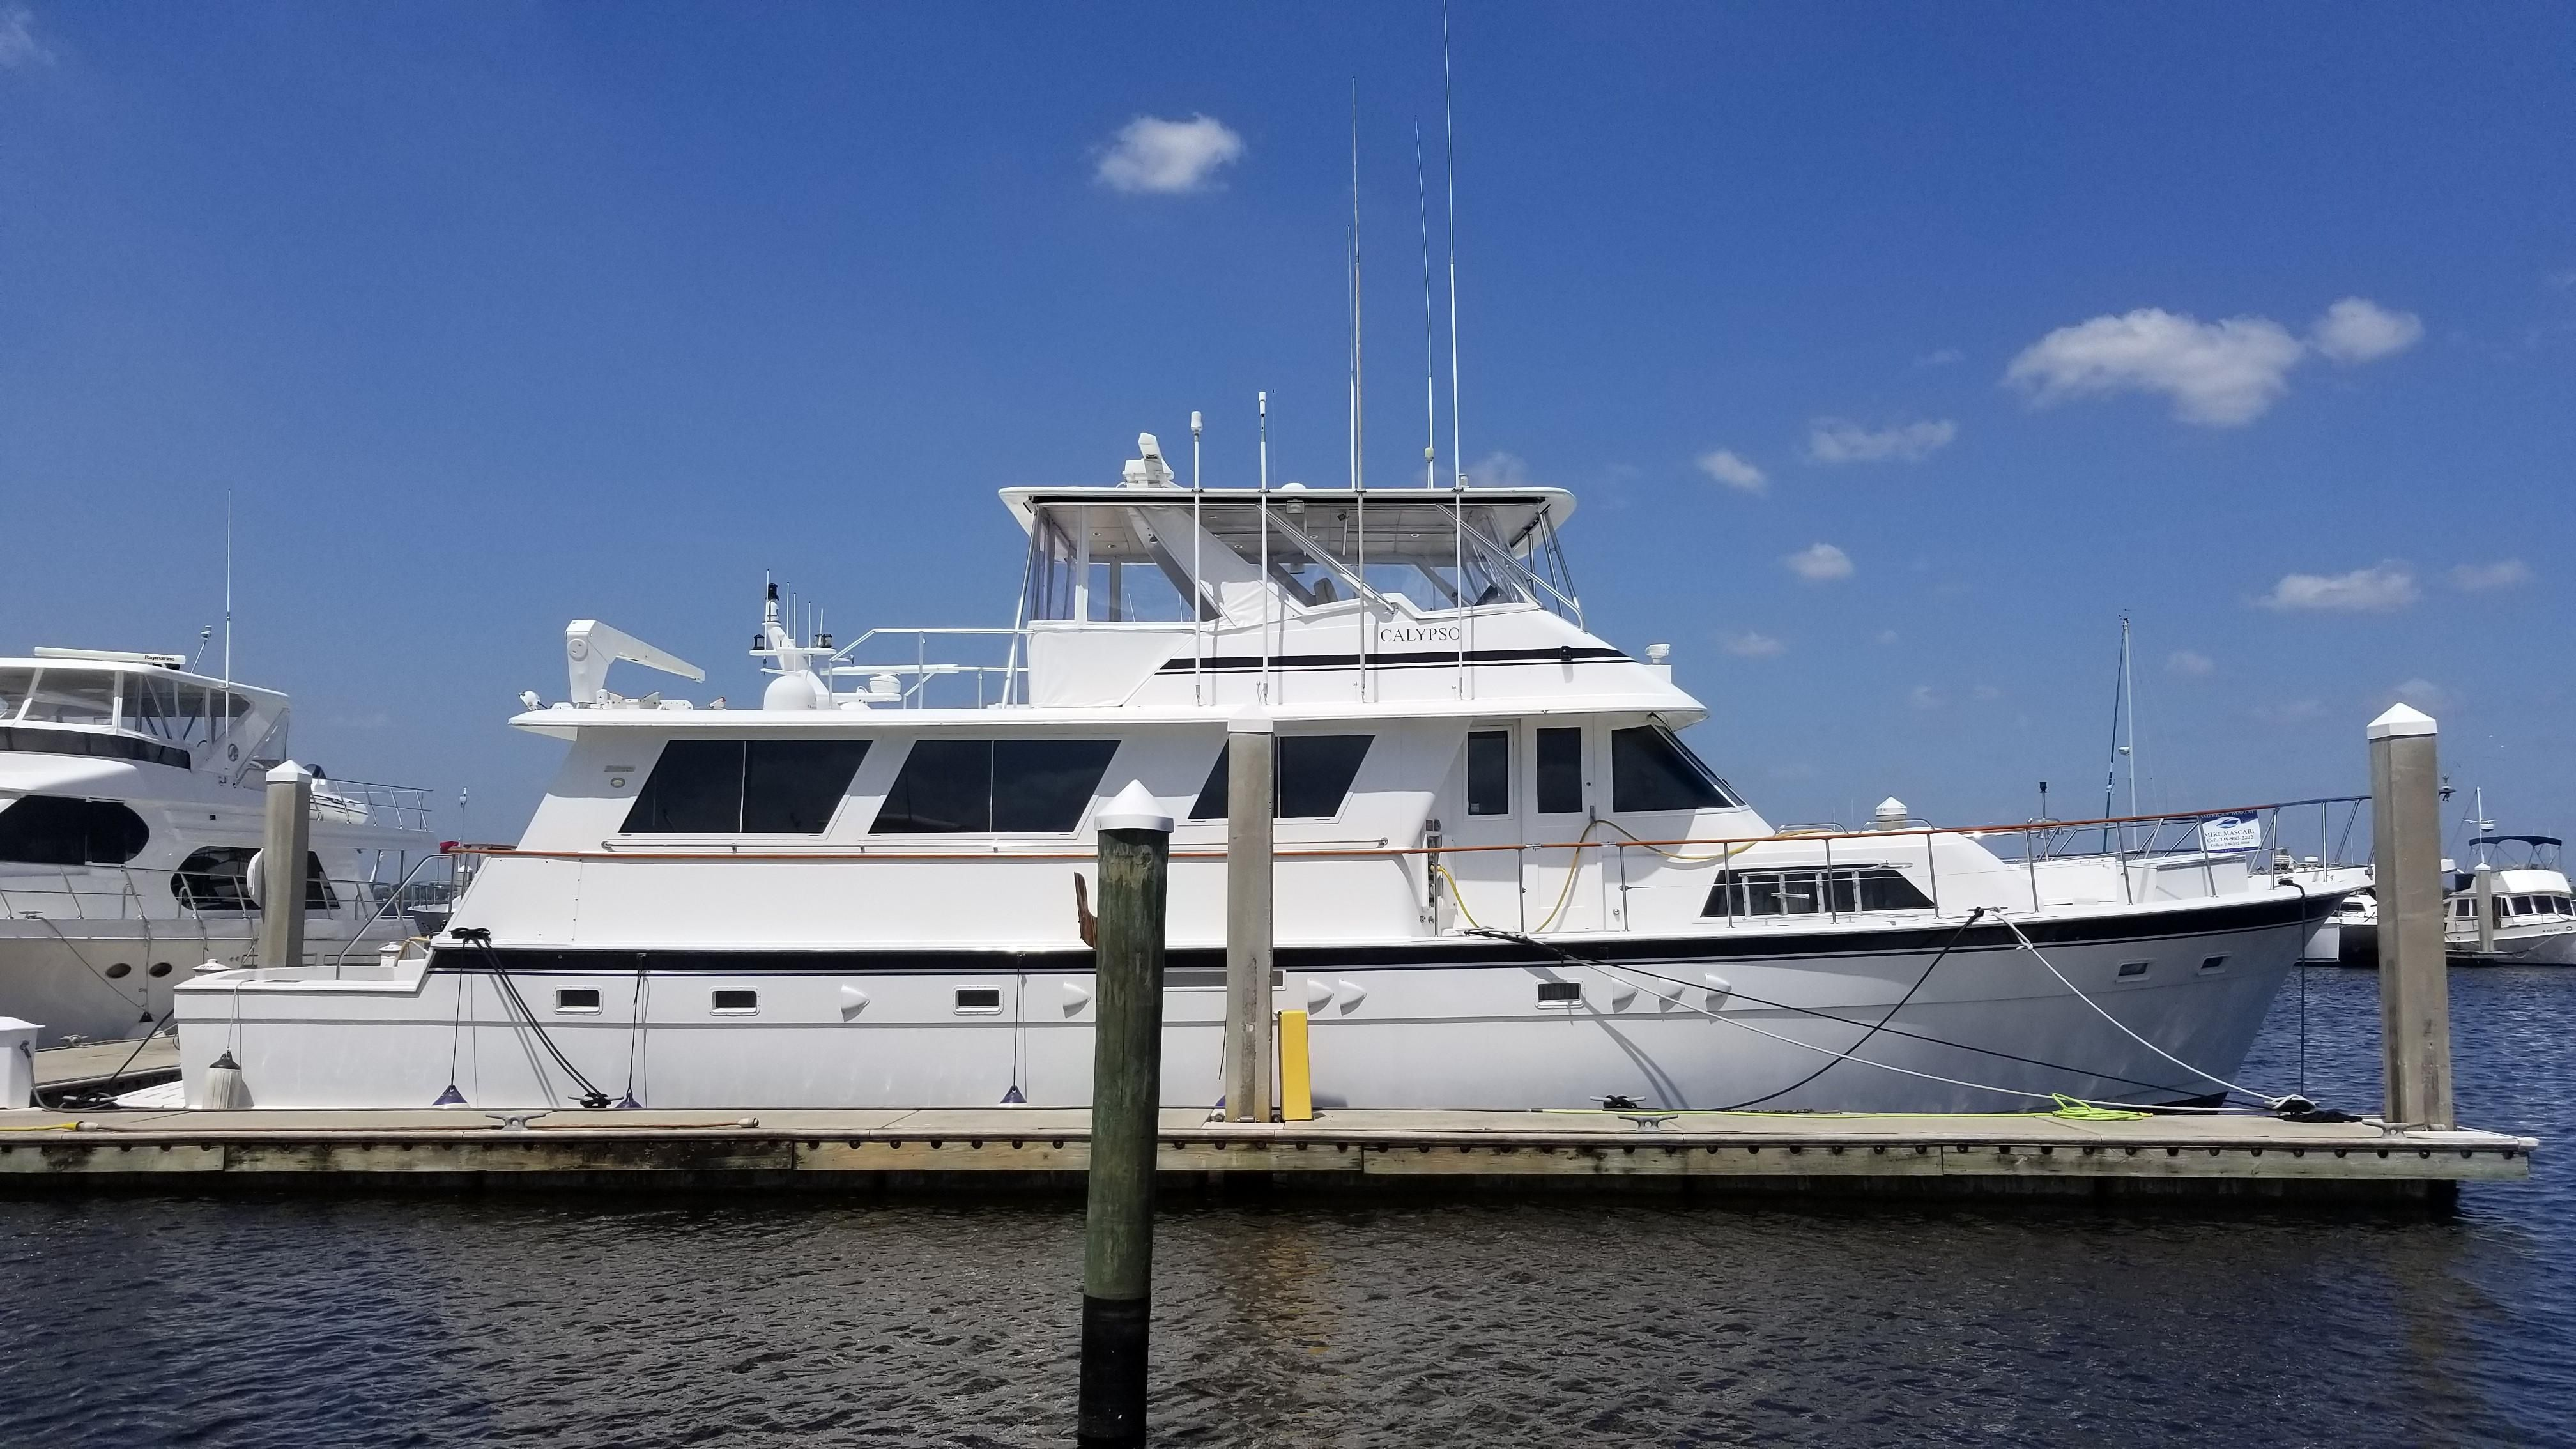 1982 hatteras 70 cockpit motor yacht power boat for sale for Hatteras 70 motor yacht